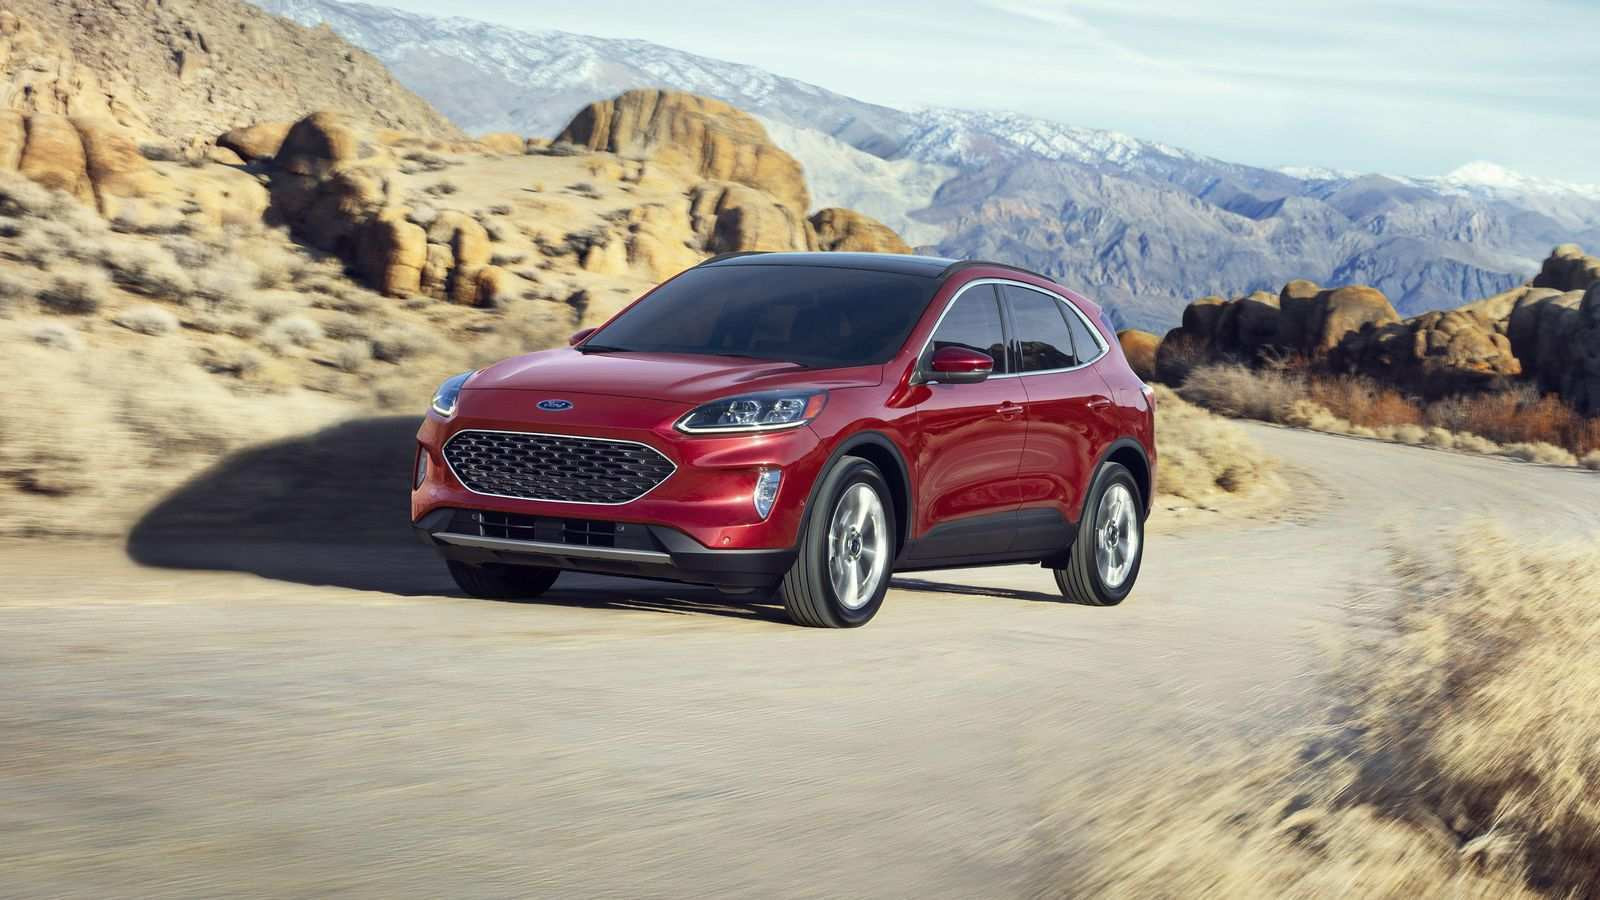 95 A 2020 All Chevy Equinox Redesign